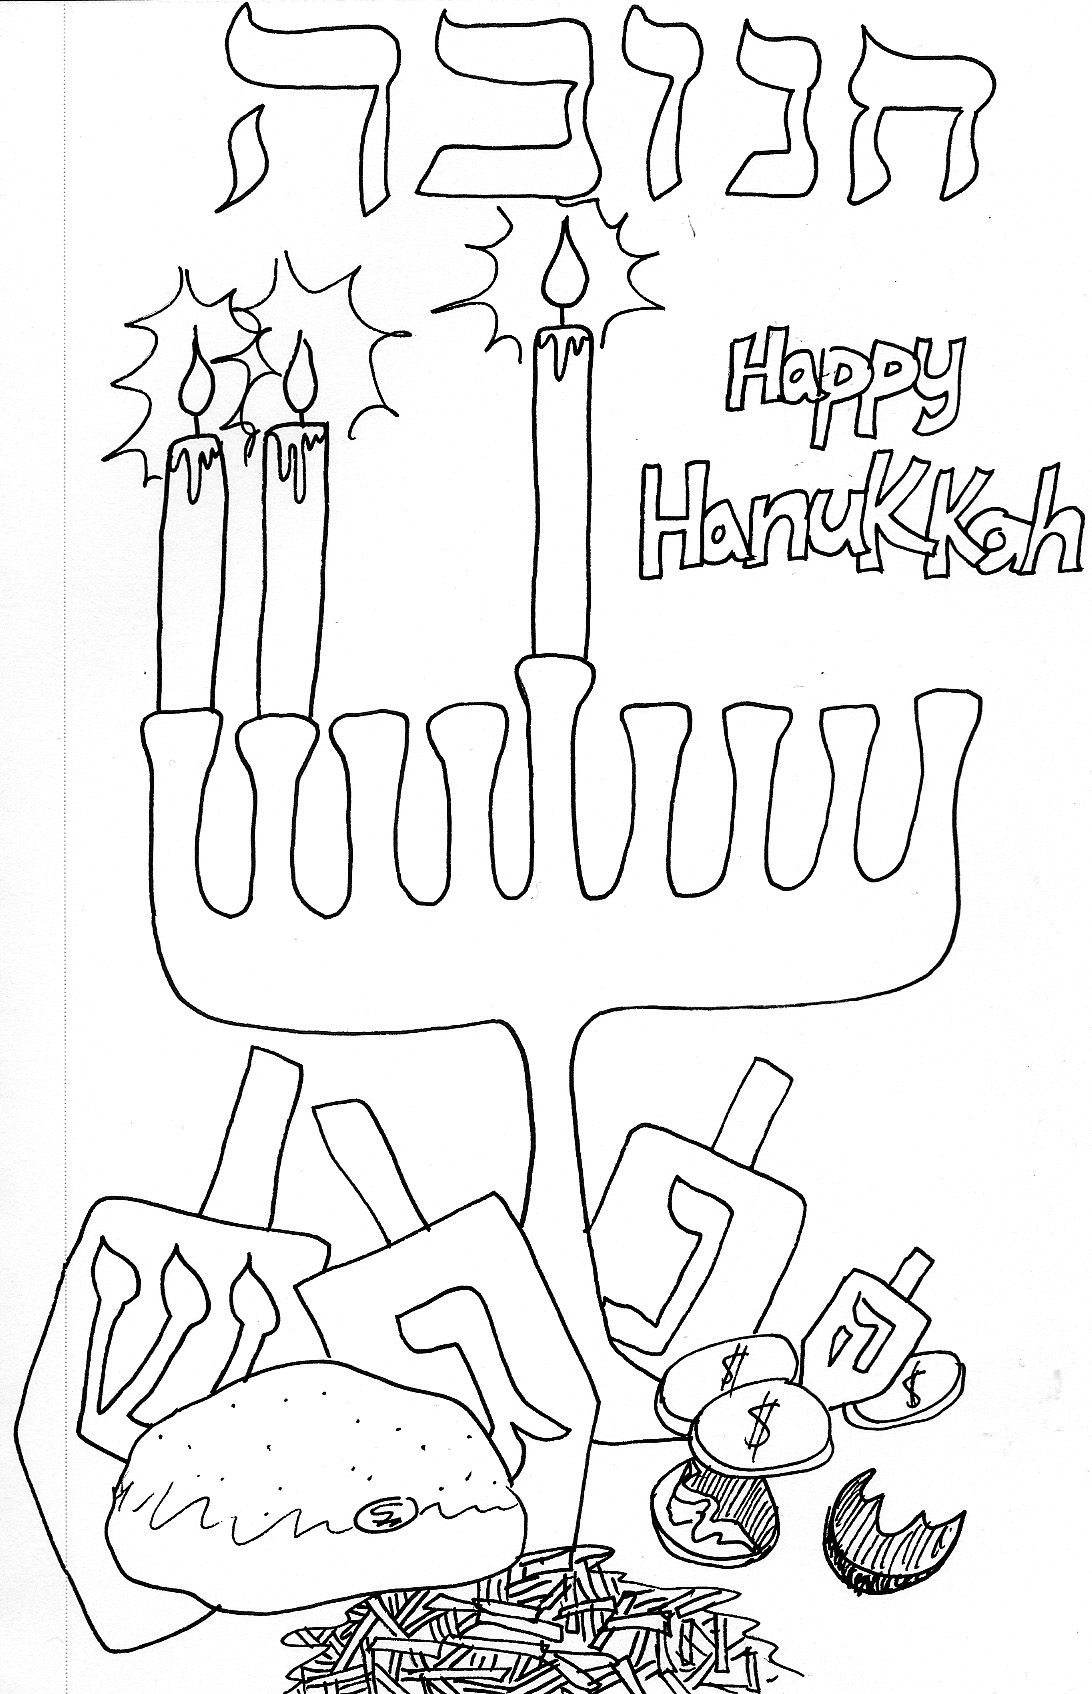 Free Printable Hanukkah Coloring Pages For Kids Best Coloring Pages For Kids [ 1694 x 1092 Pixel ]